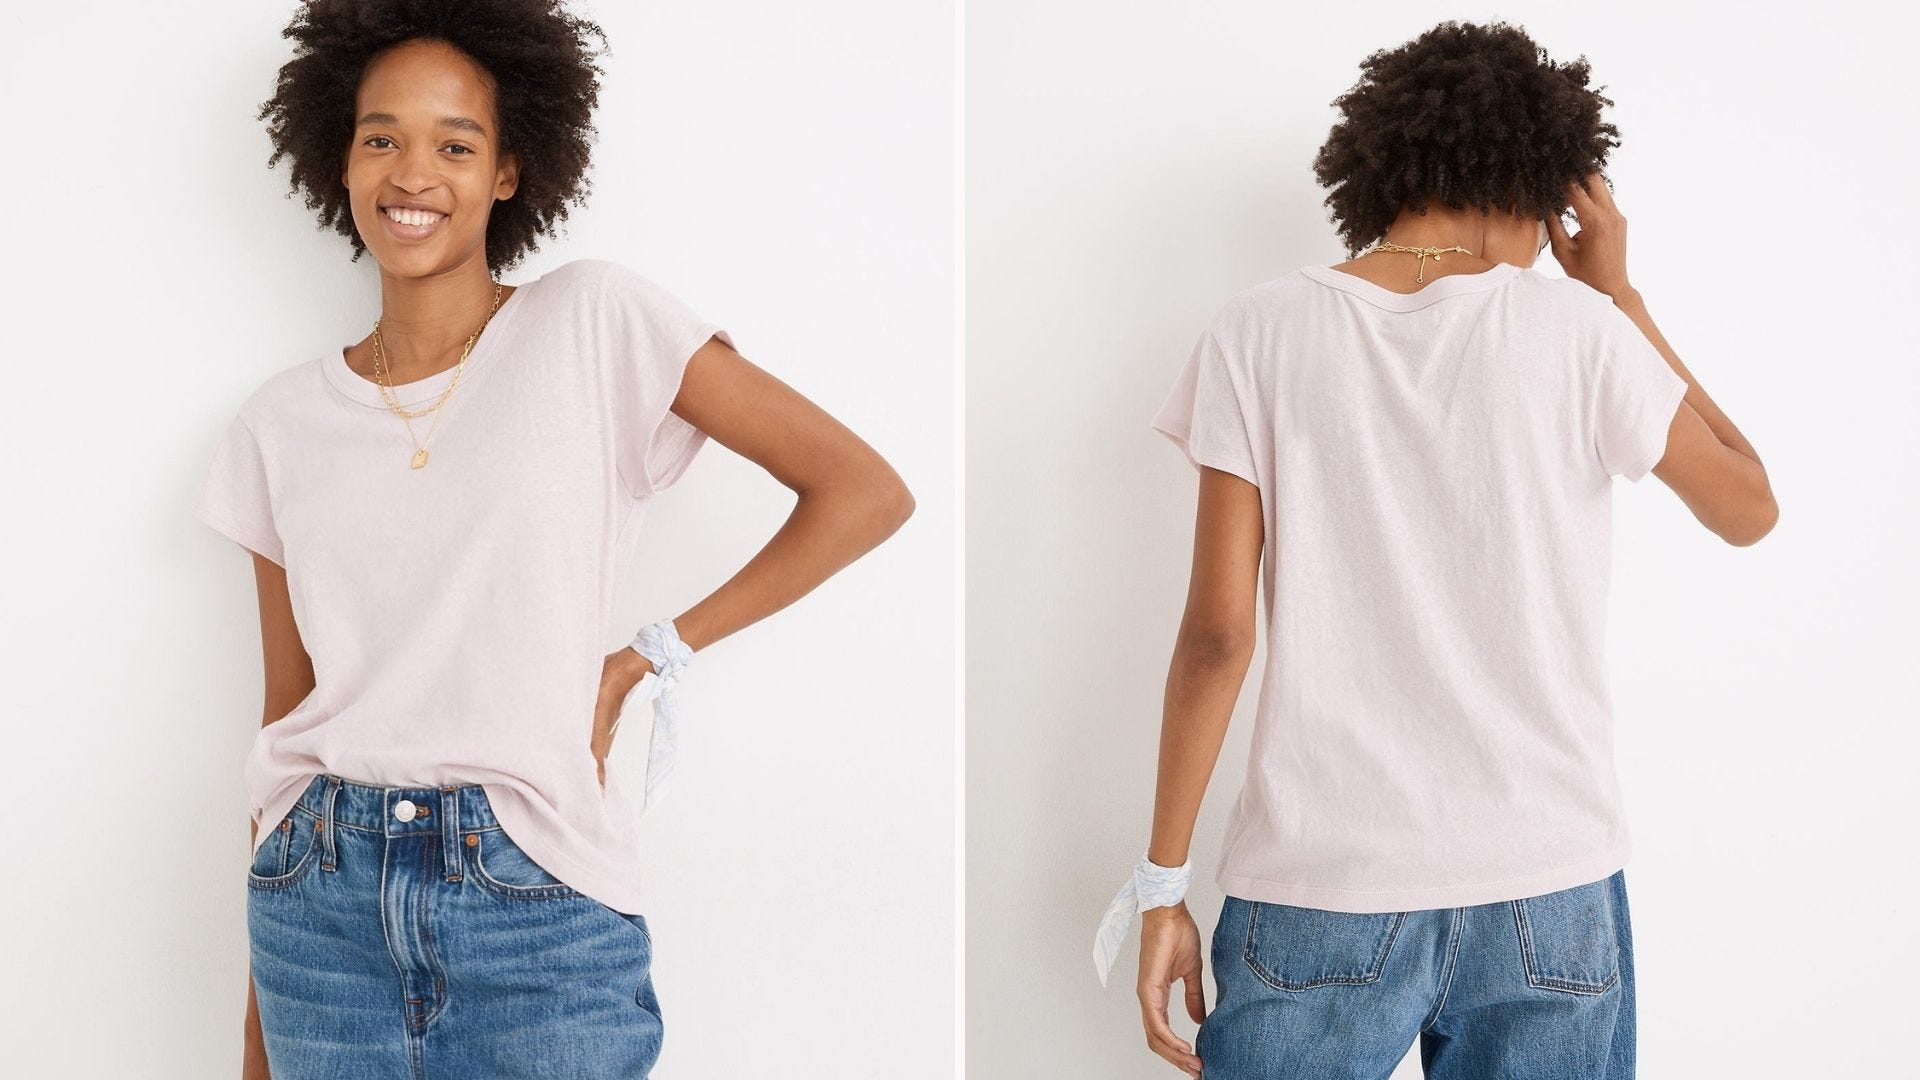 Front and back view of a Black woman wearing a white t-shirt, jeans, and a thin necklace